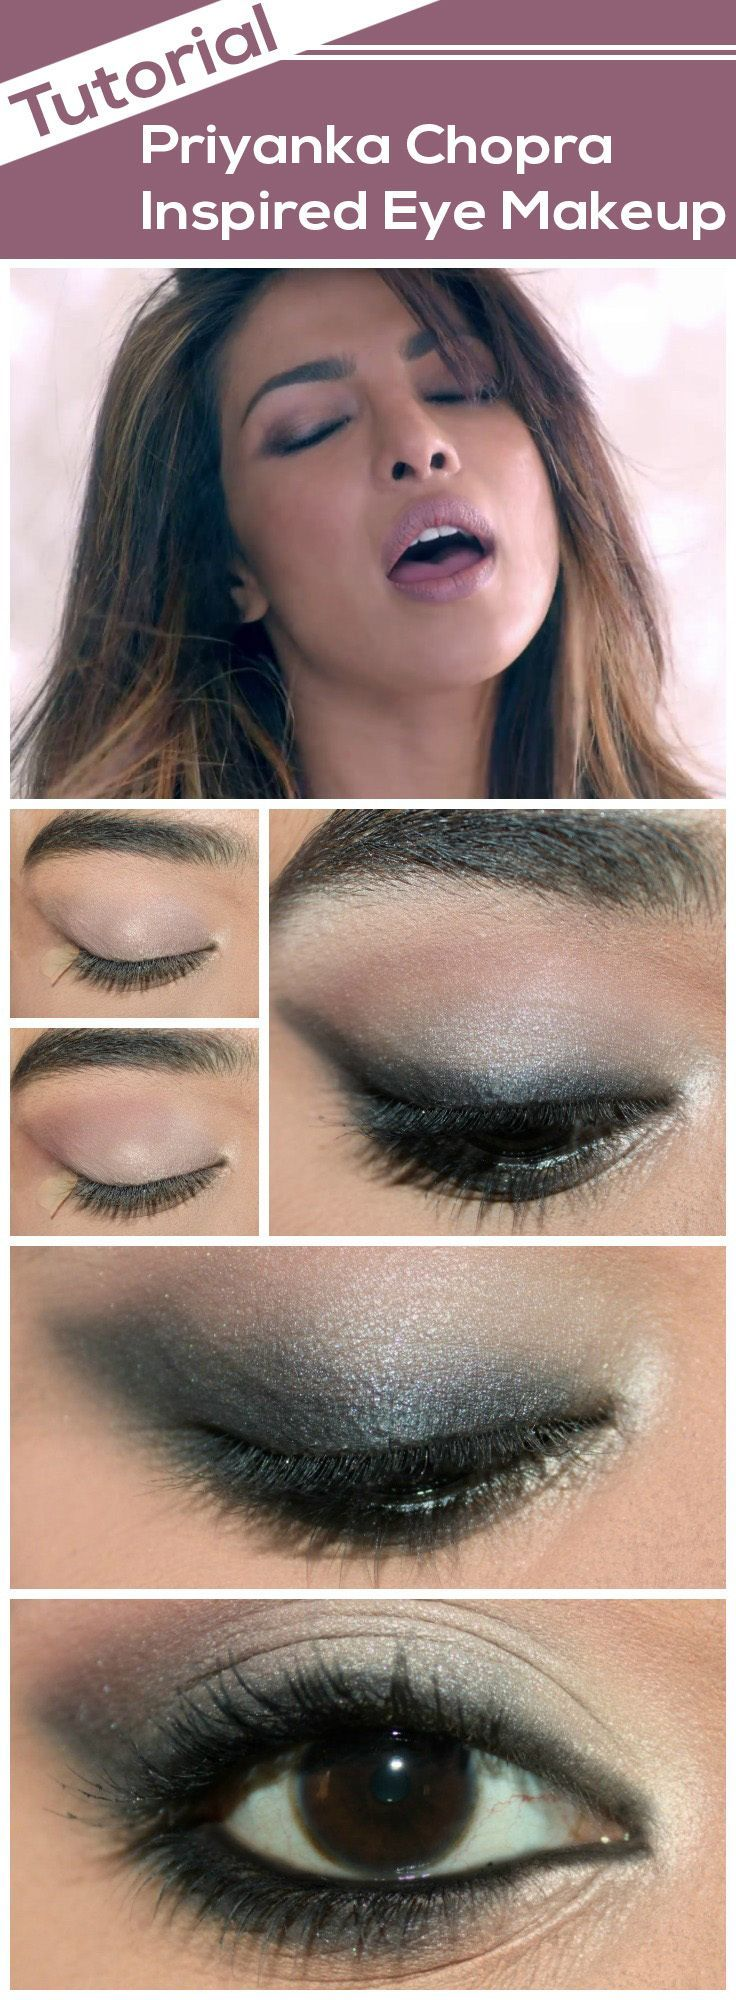 beginner makeup artist resume%0A Best Ideas For Makeup Tutorials Picture Description Are you crazy about eye  makeup and love to try out everything new  Then here u    s an inspired priyanka